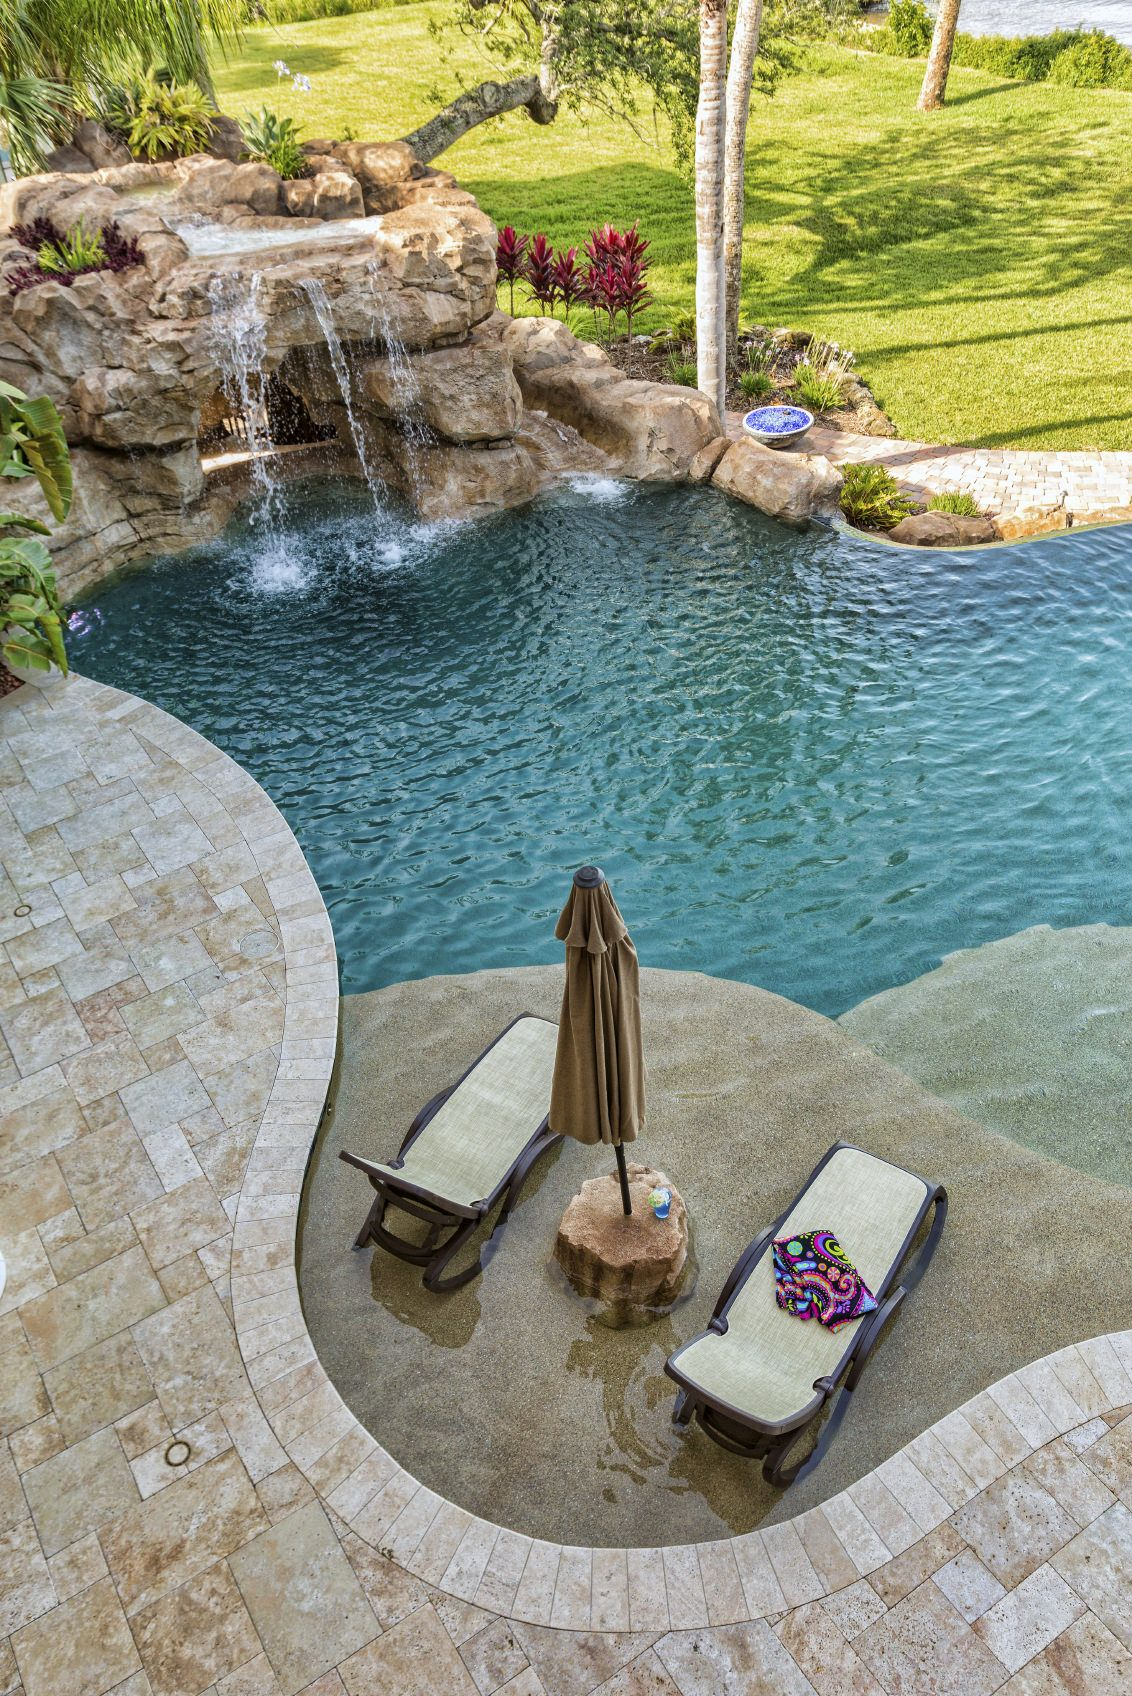 99 Swimming Pool Designs And Types 2019 Pictures In 2020 Swimming Pool Designs Pool Waterfall Swimming Pools